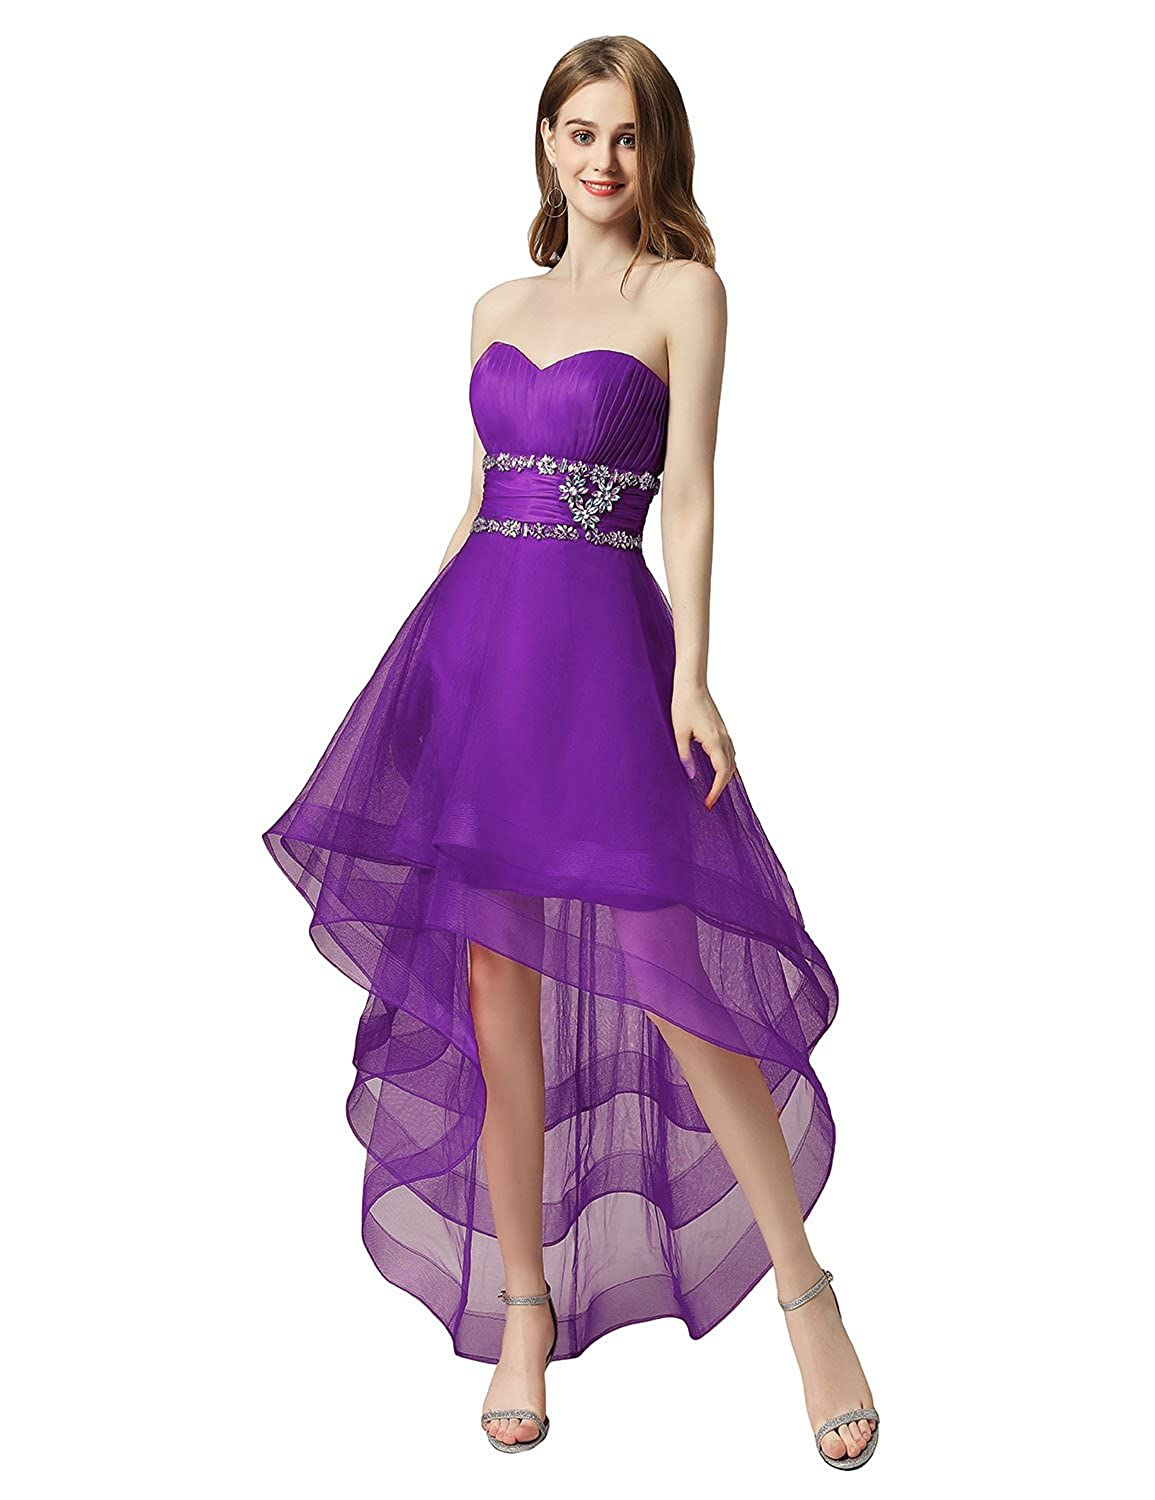 014purple Sarahbridal Women's Tulle HiLow Beading Prom Dresses Evening Homecoming Cocktail Gowns